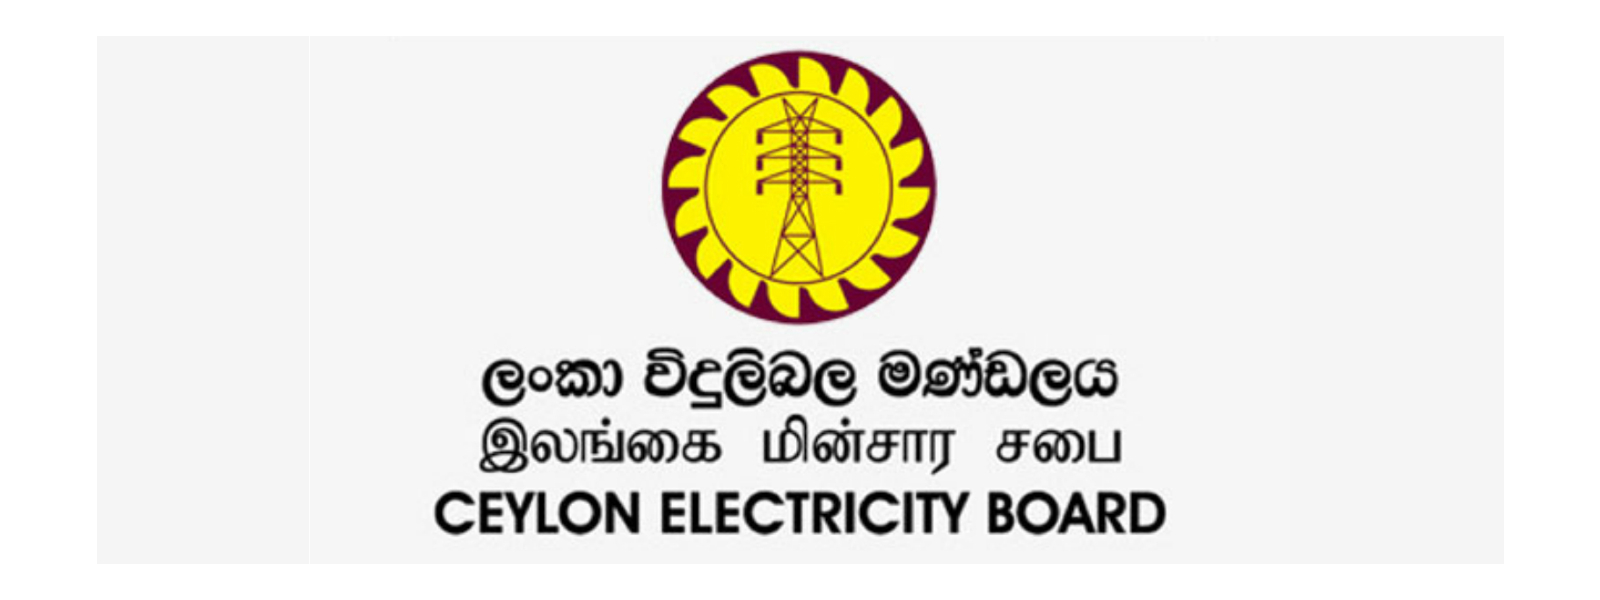 NP Power failure due to Technical Fault: CEB